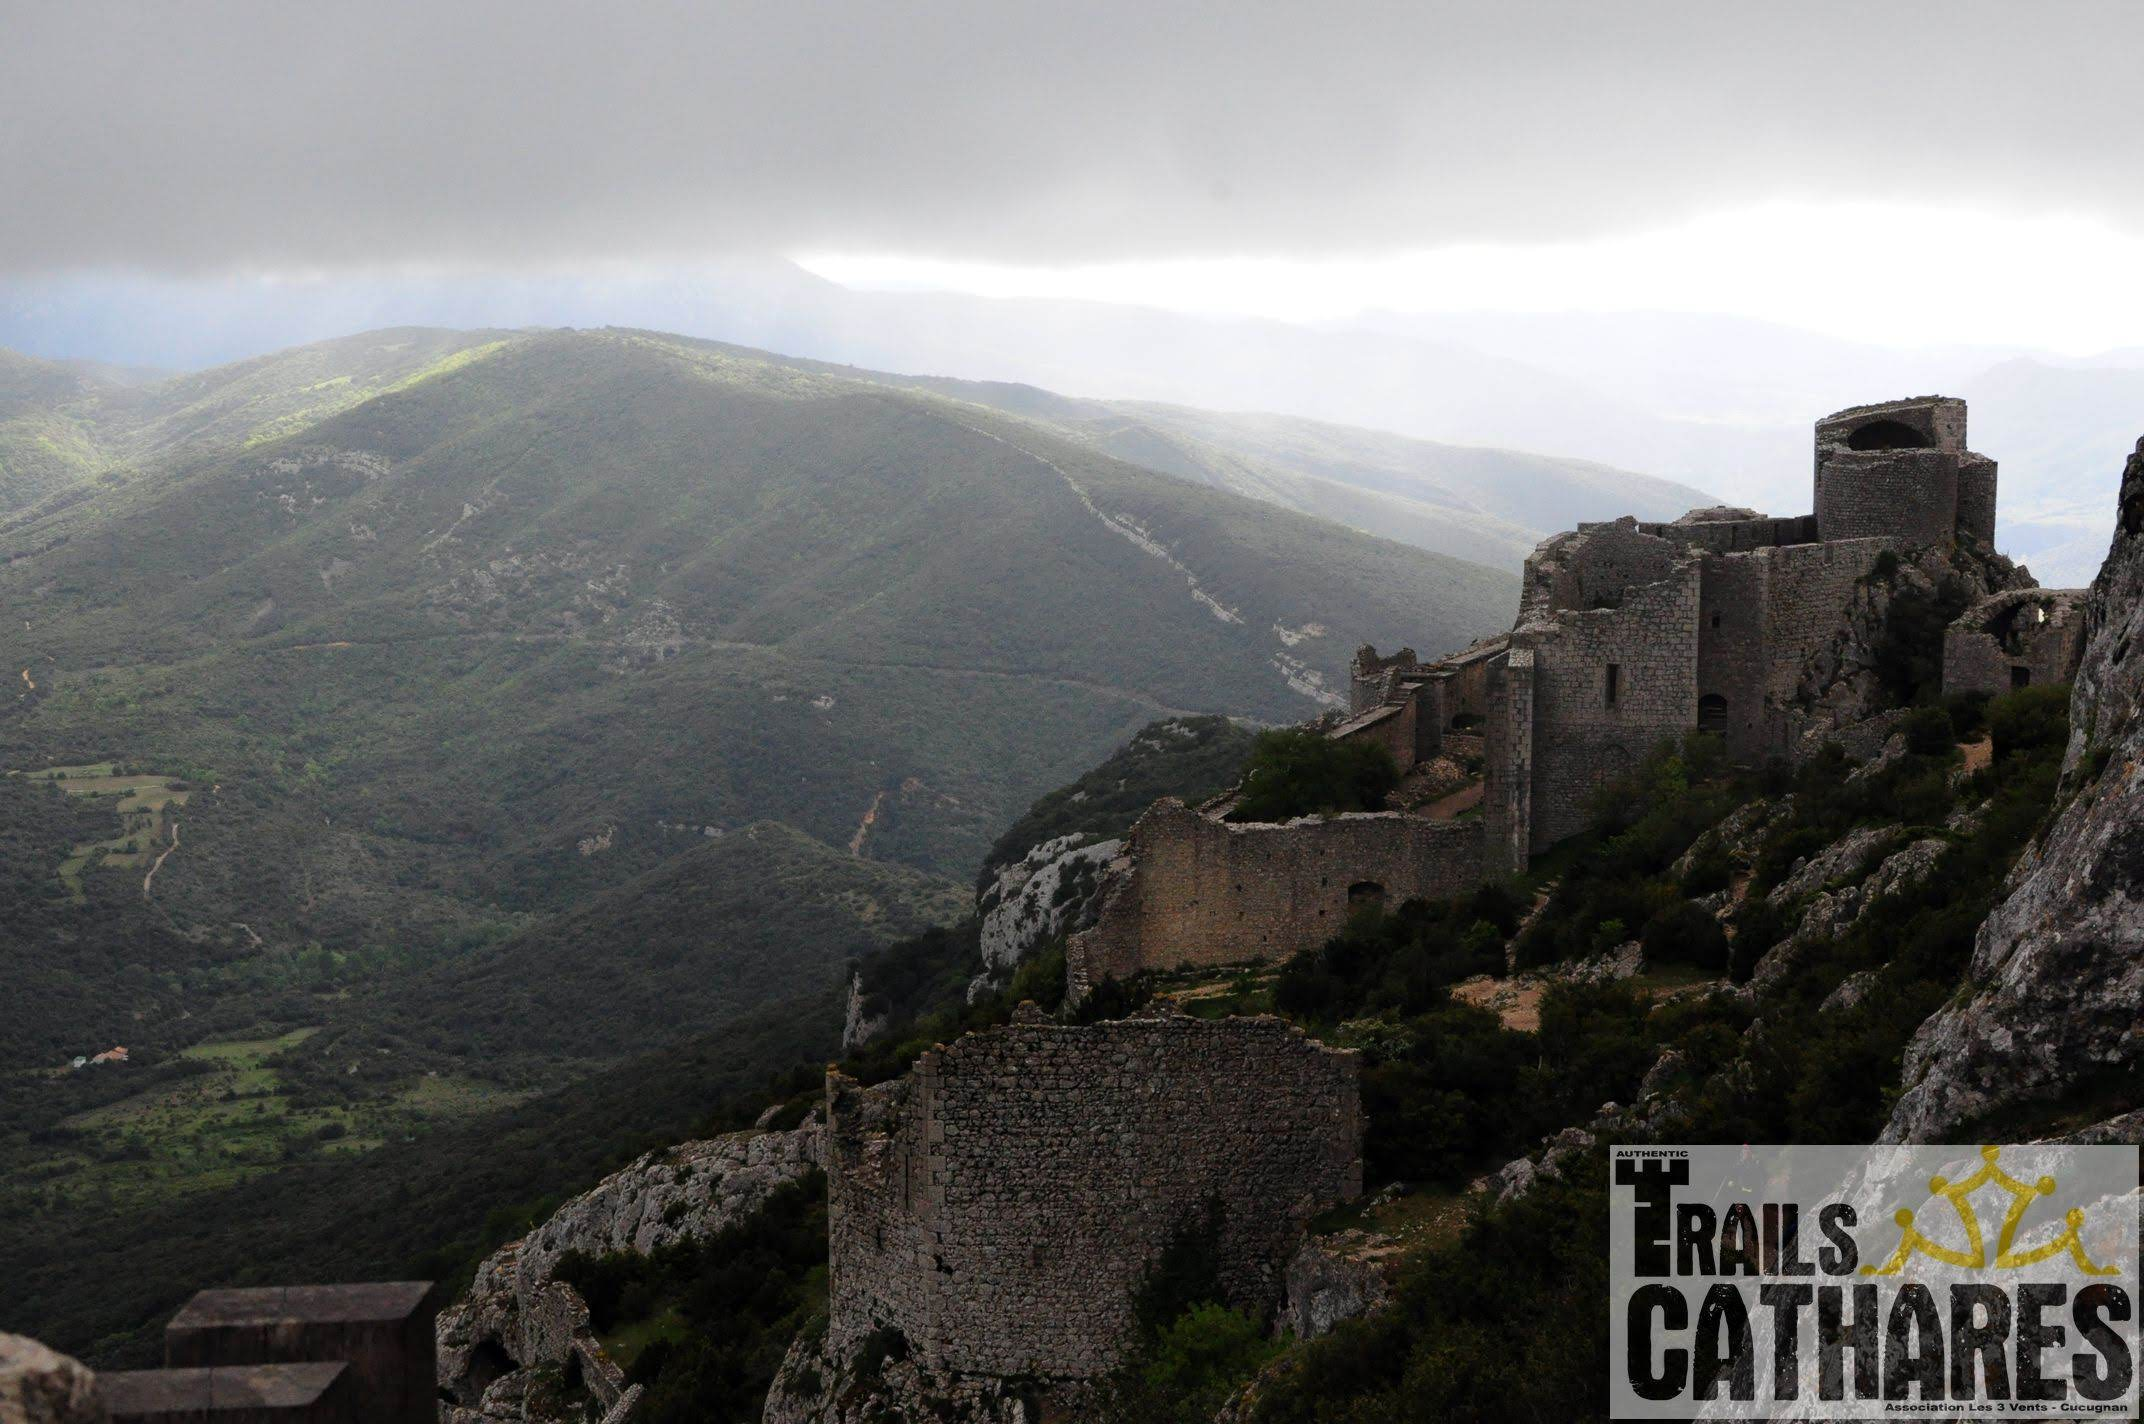 Trails Cathares 2019 - pure trail running in the Pyrenees